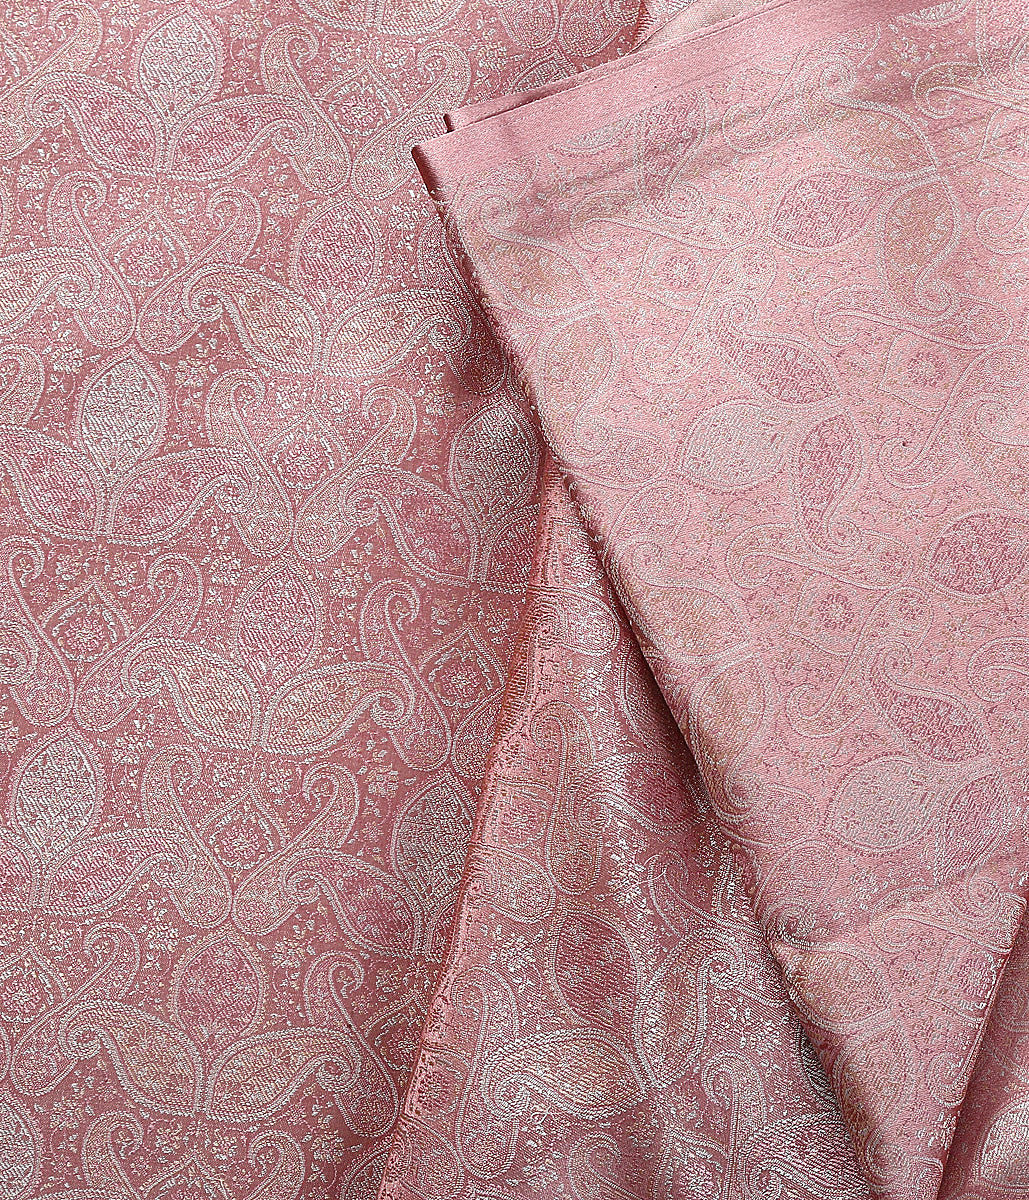 Handwoven Onion Pink Self Weave Jamawar Paisley Fabric